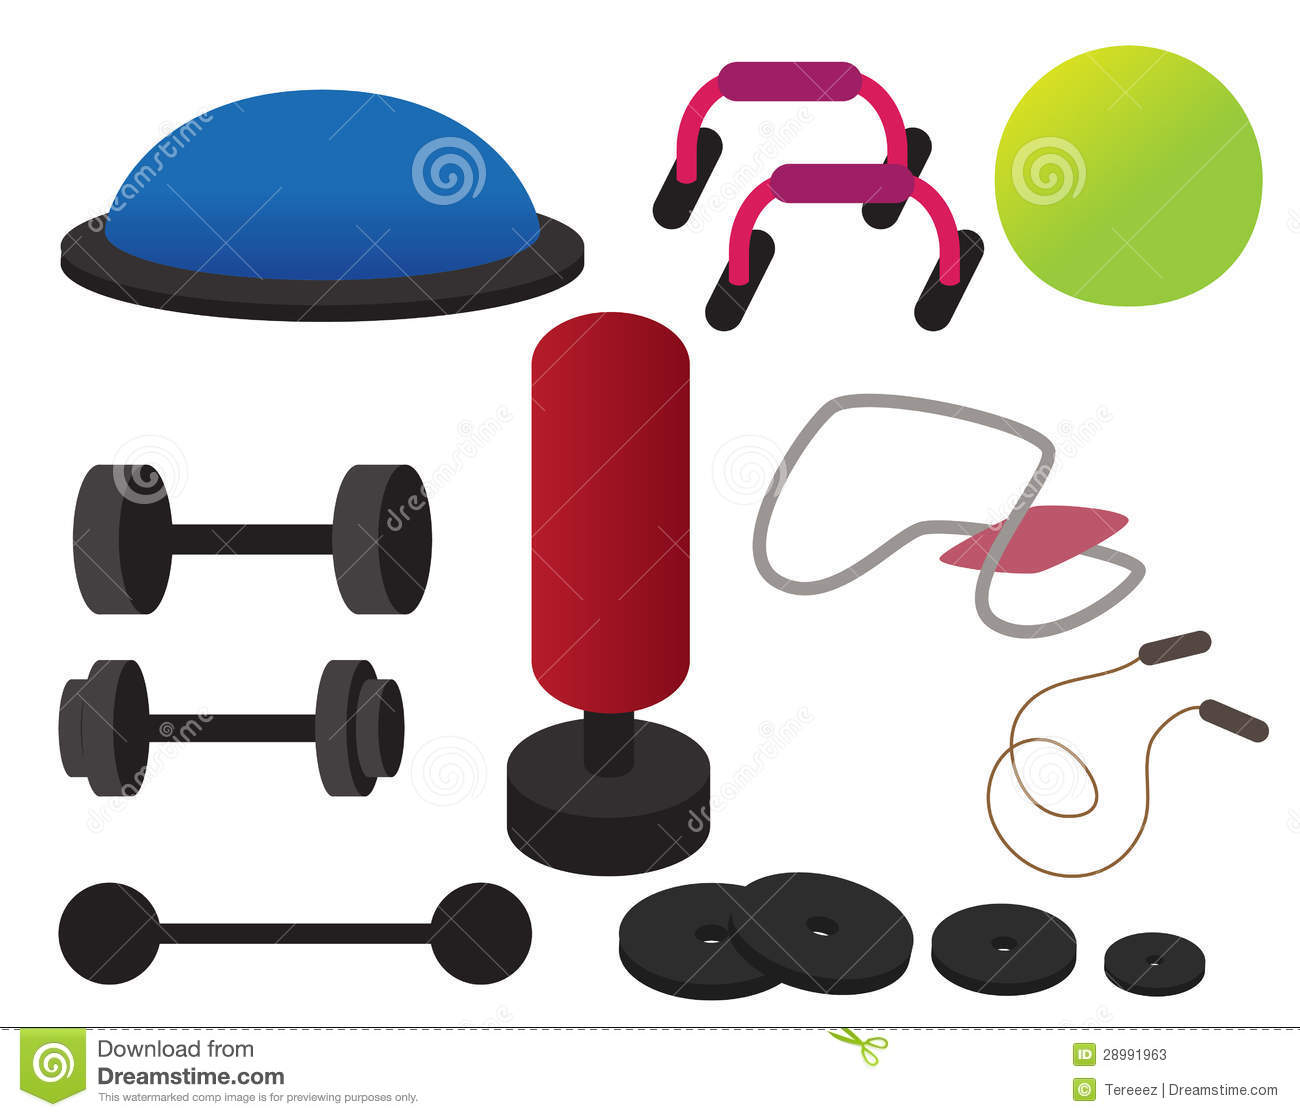 Work out equipment clipart